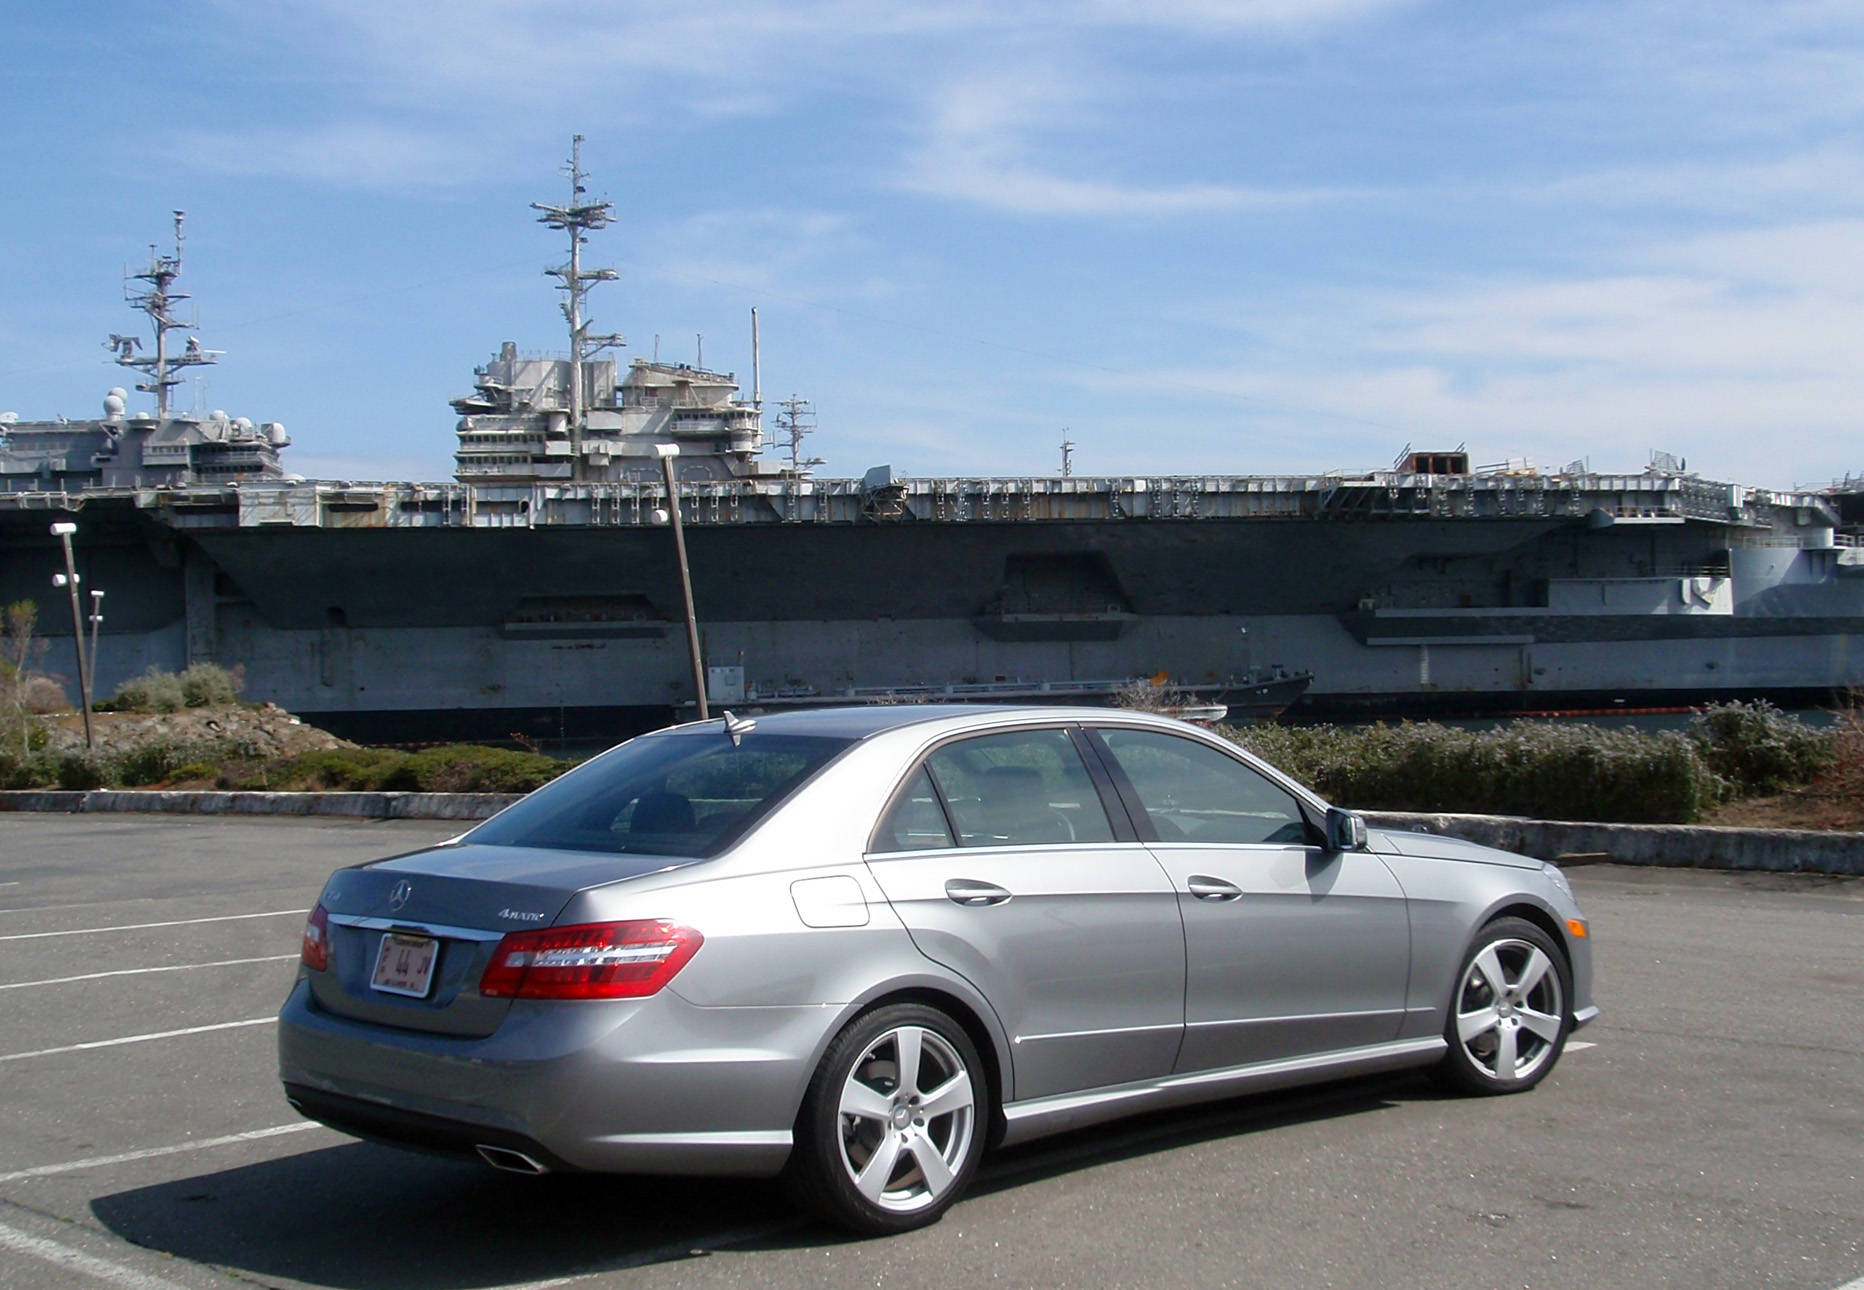 Test drive 2010 mercedes benz e350 4matic our auto expert for 2010 mercedes benz e350 4matic